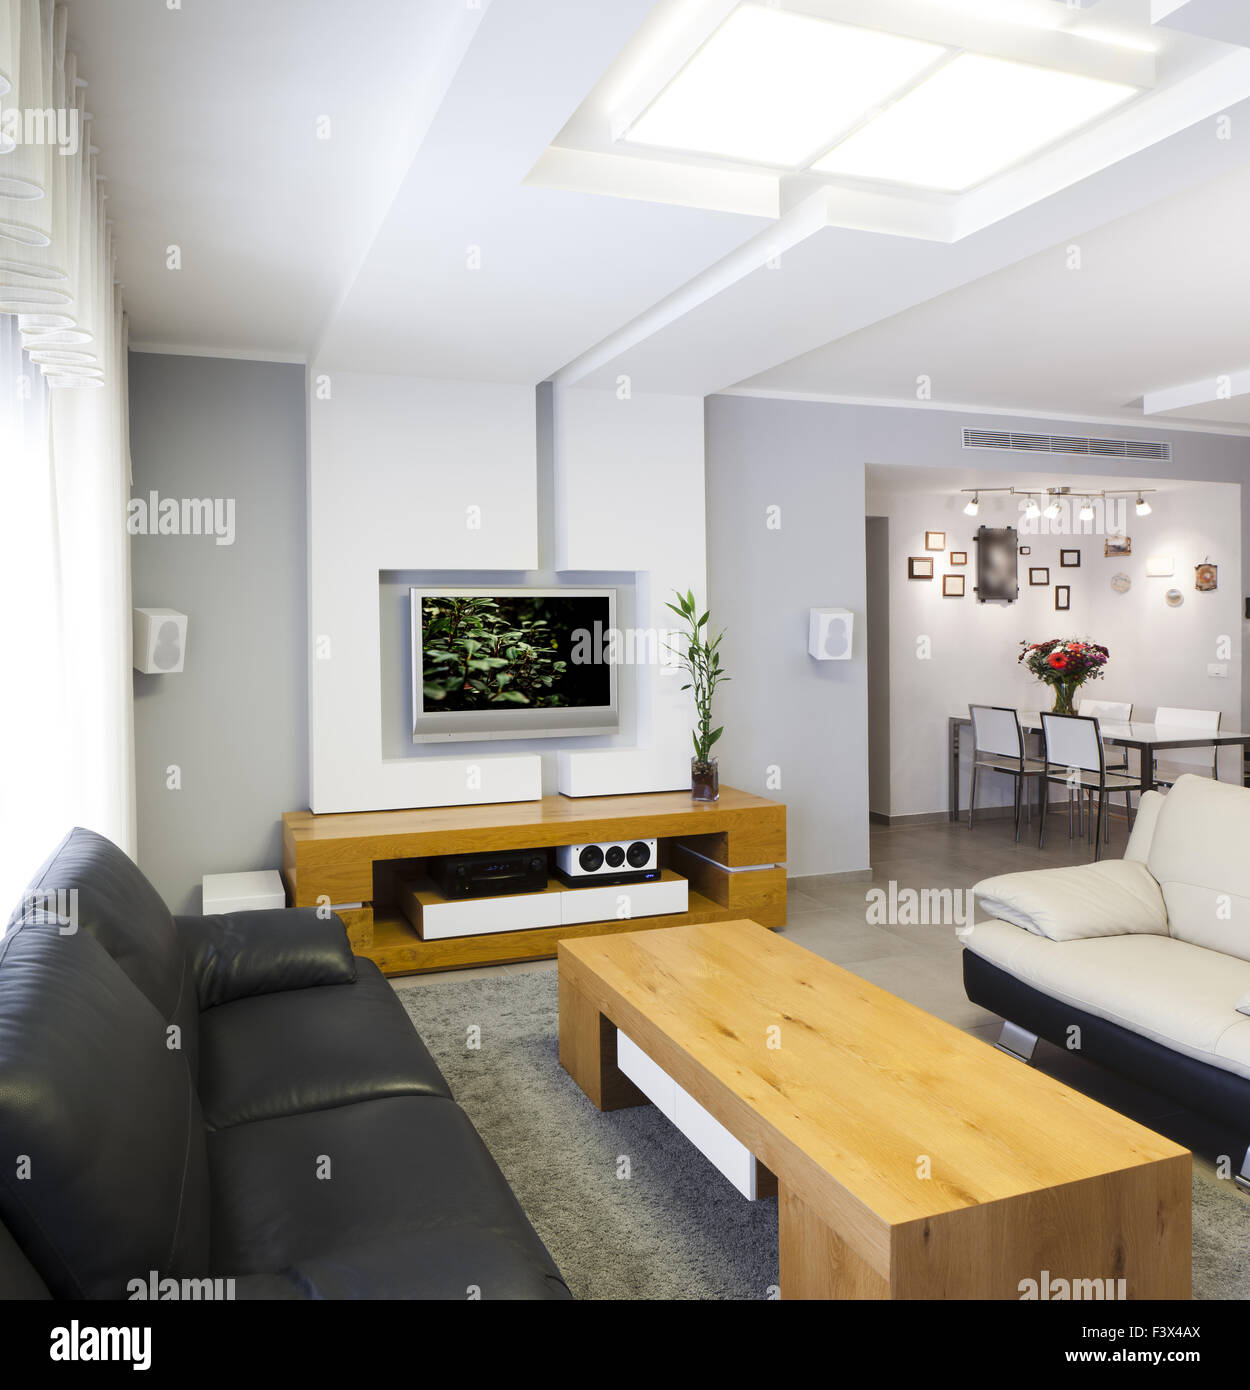 Couch Table Tv Wood Floor Stockfotos & Couch Table Tv Wood Floor ...